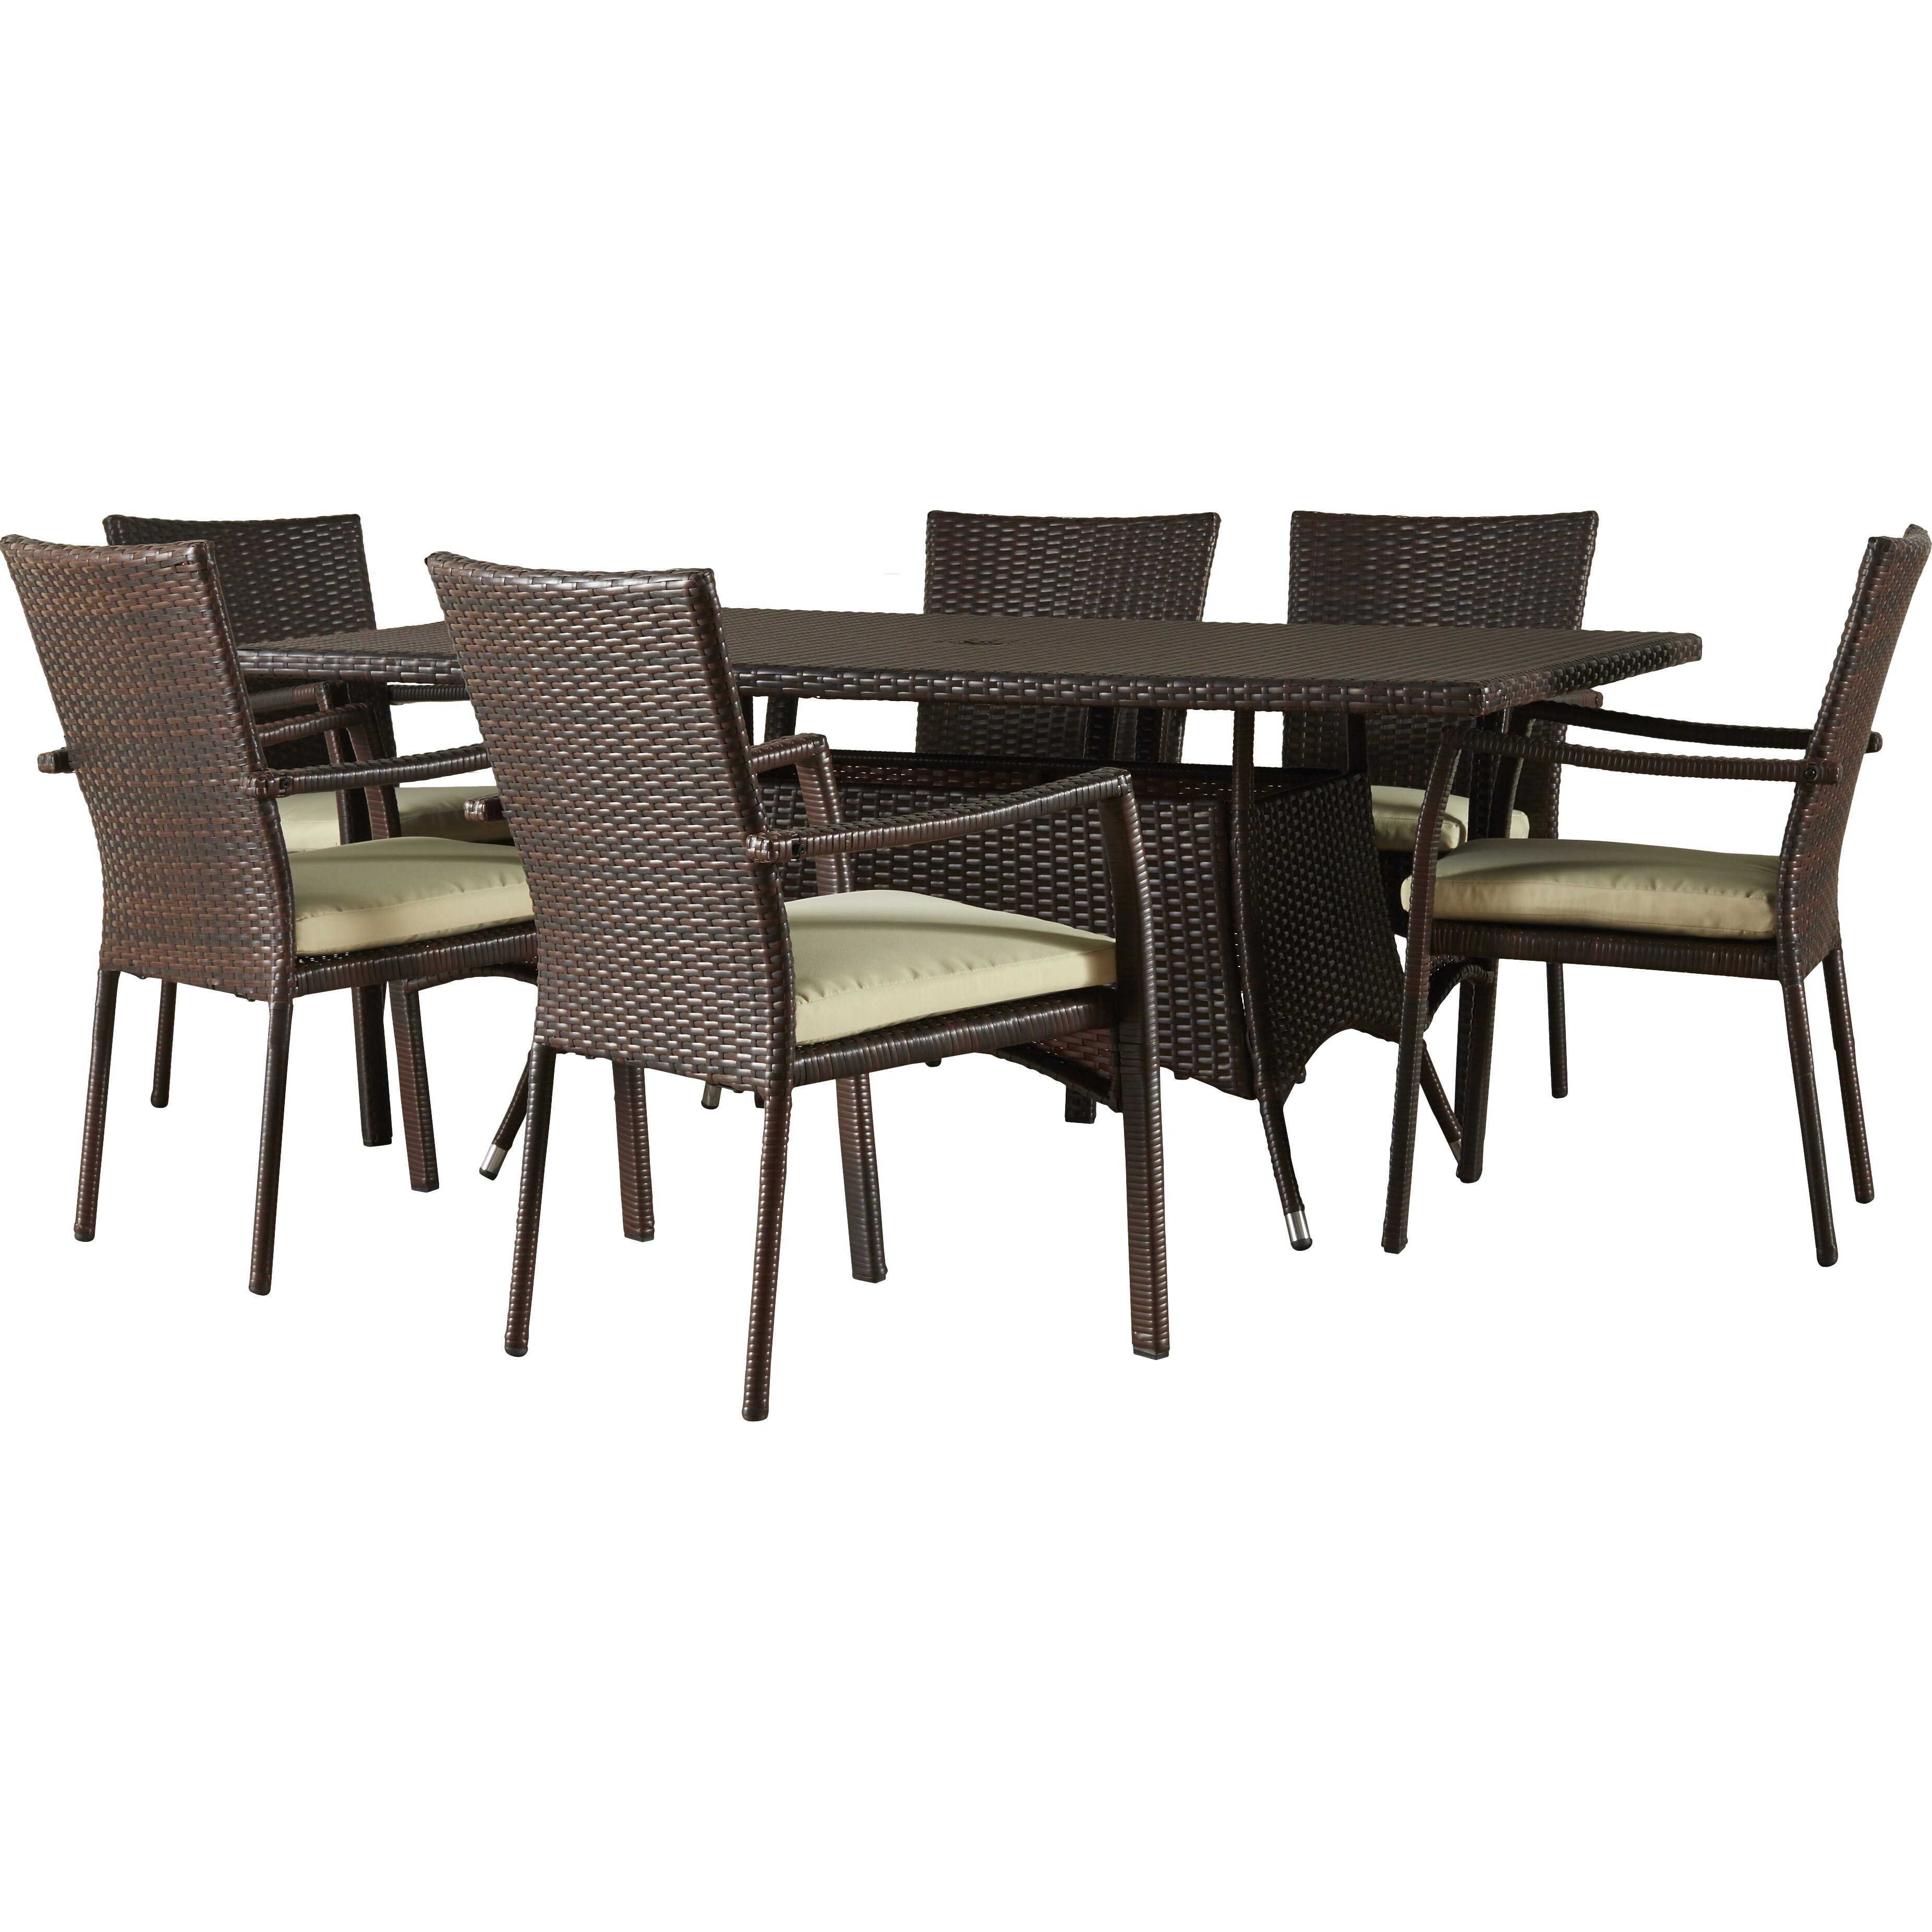 Beachcrest home lakewood park 7 piece dining set with for 7 piece dining set